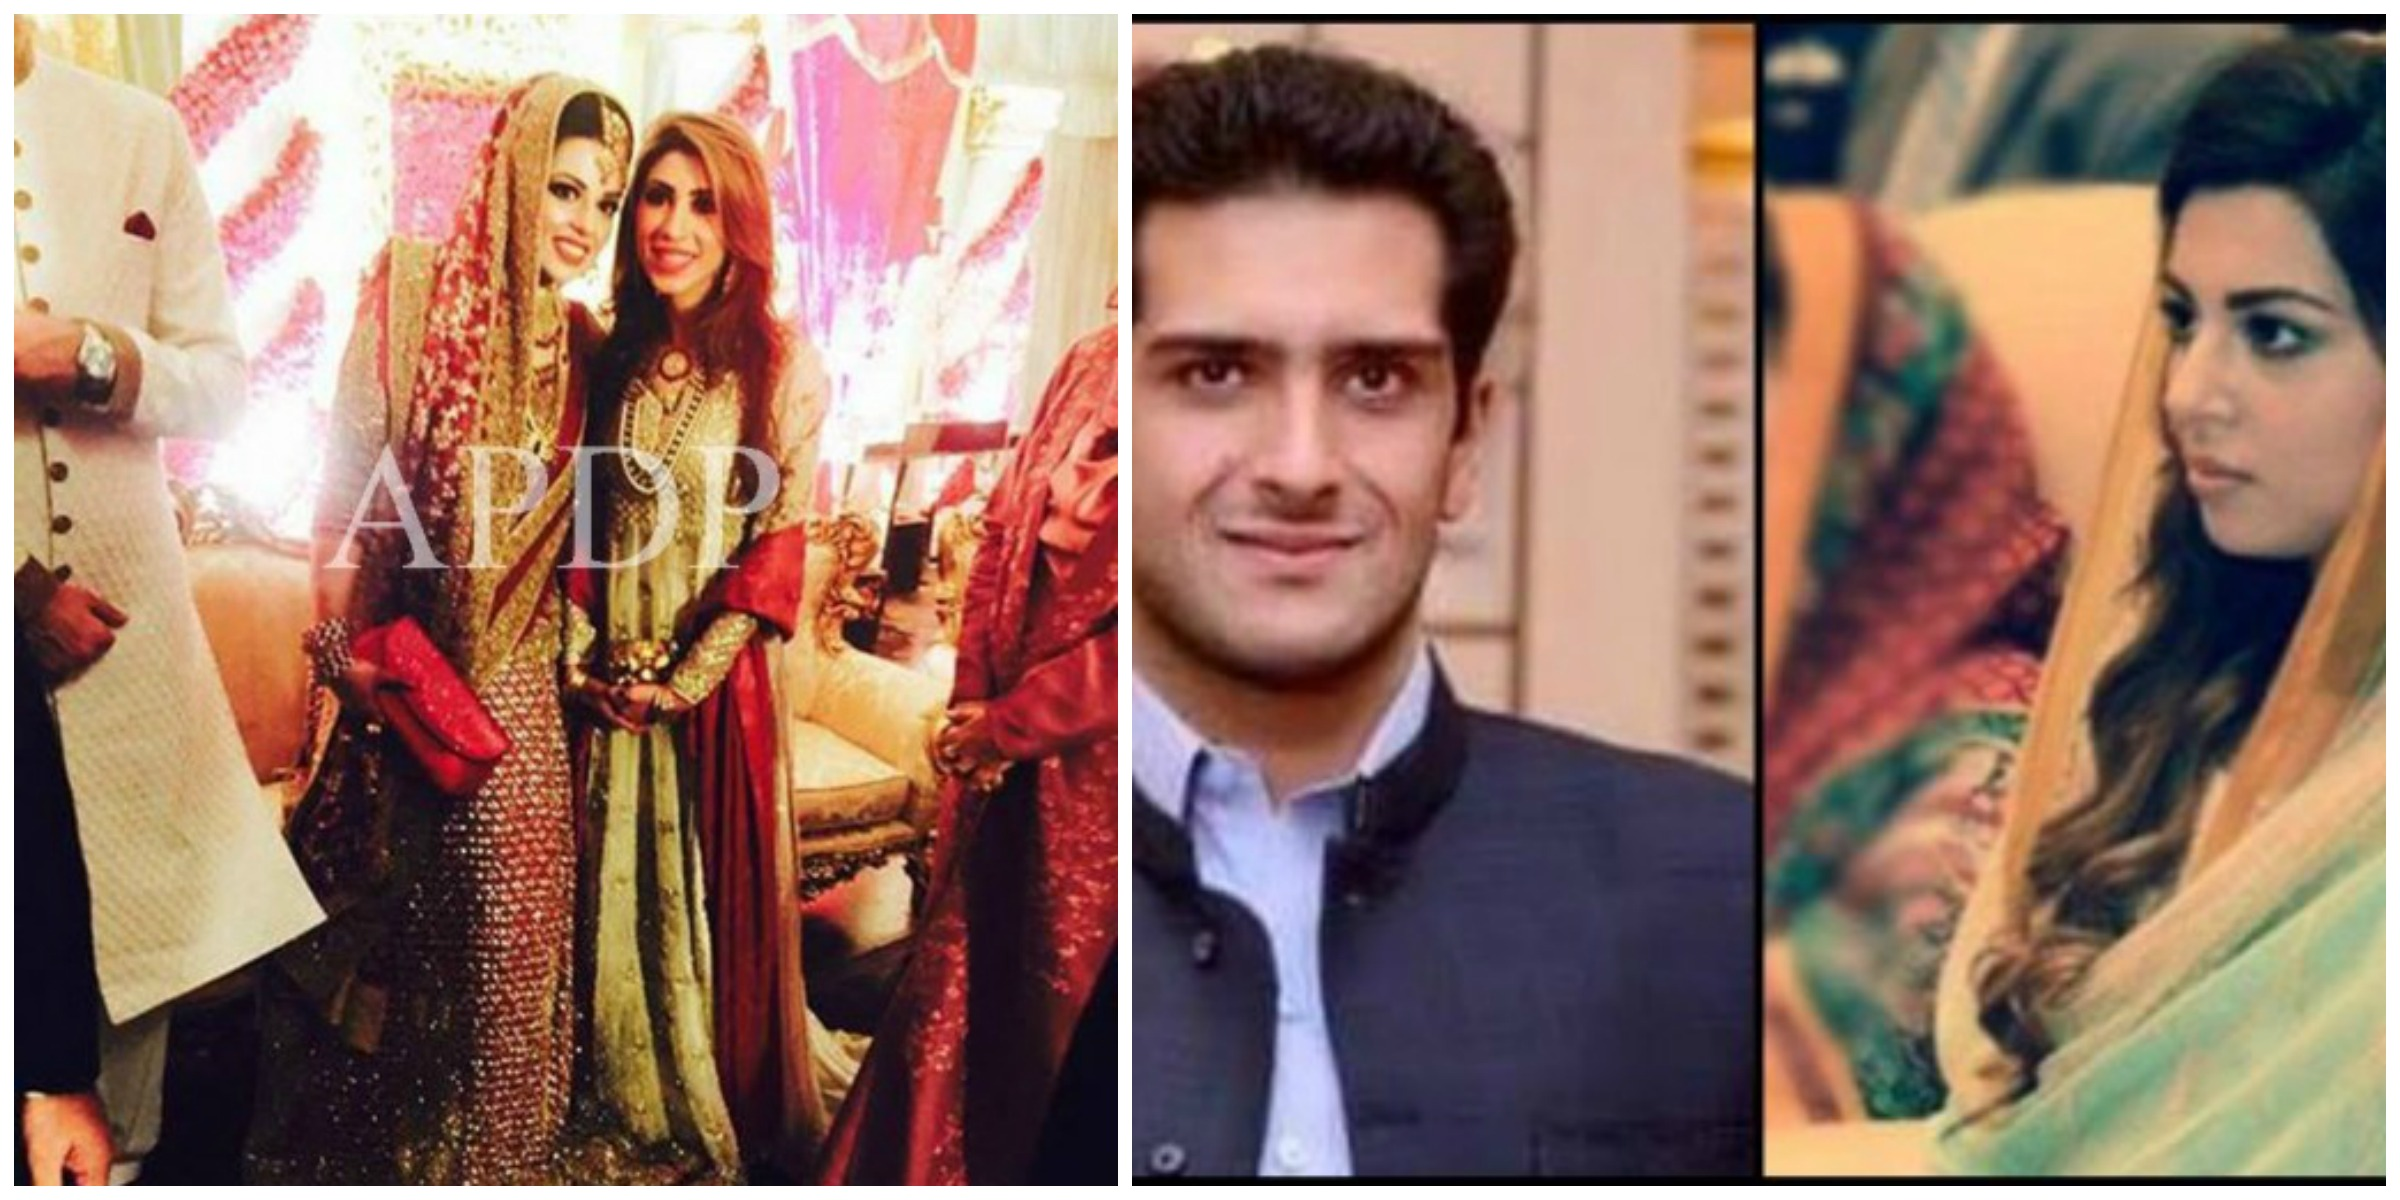 Maryam Nawaz Daughter's Wedding Pictures | Style.Pk: style.pk/maryam-nawaz-daughters-wedding-pictures